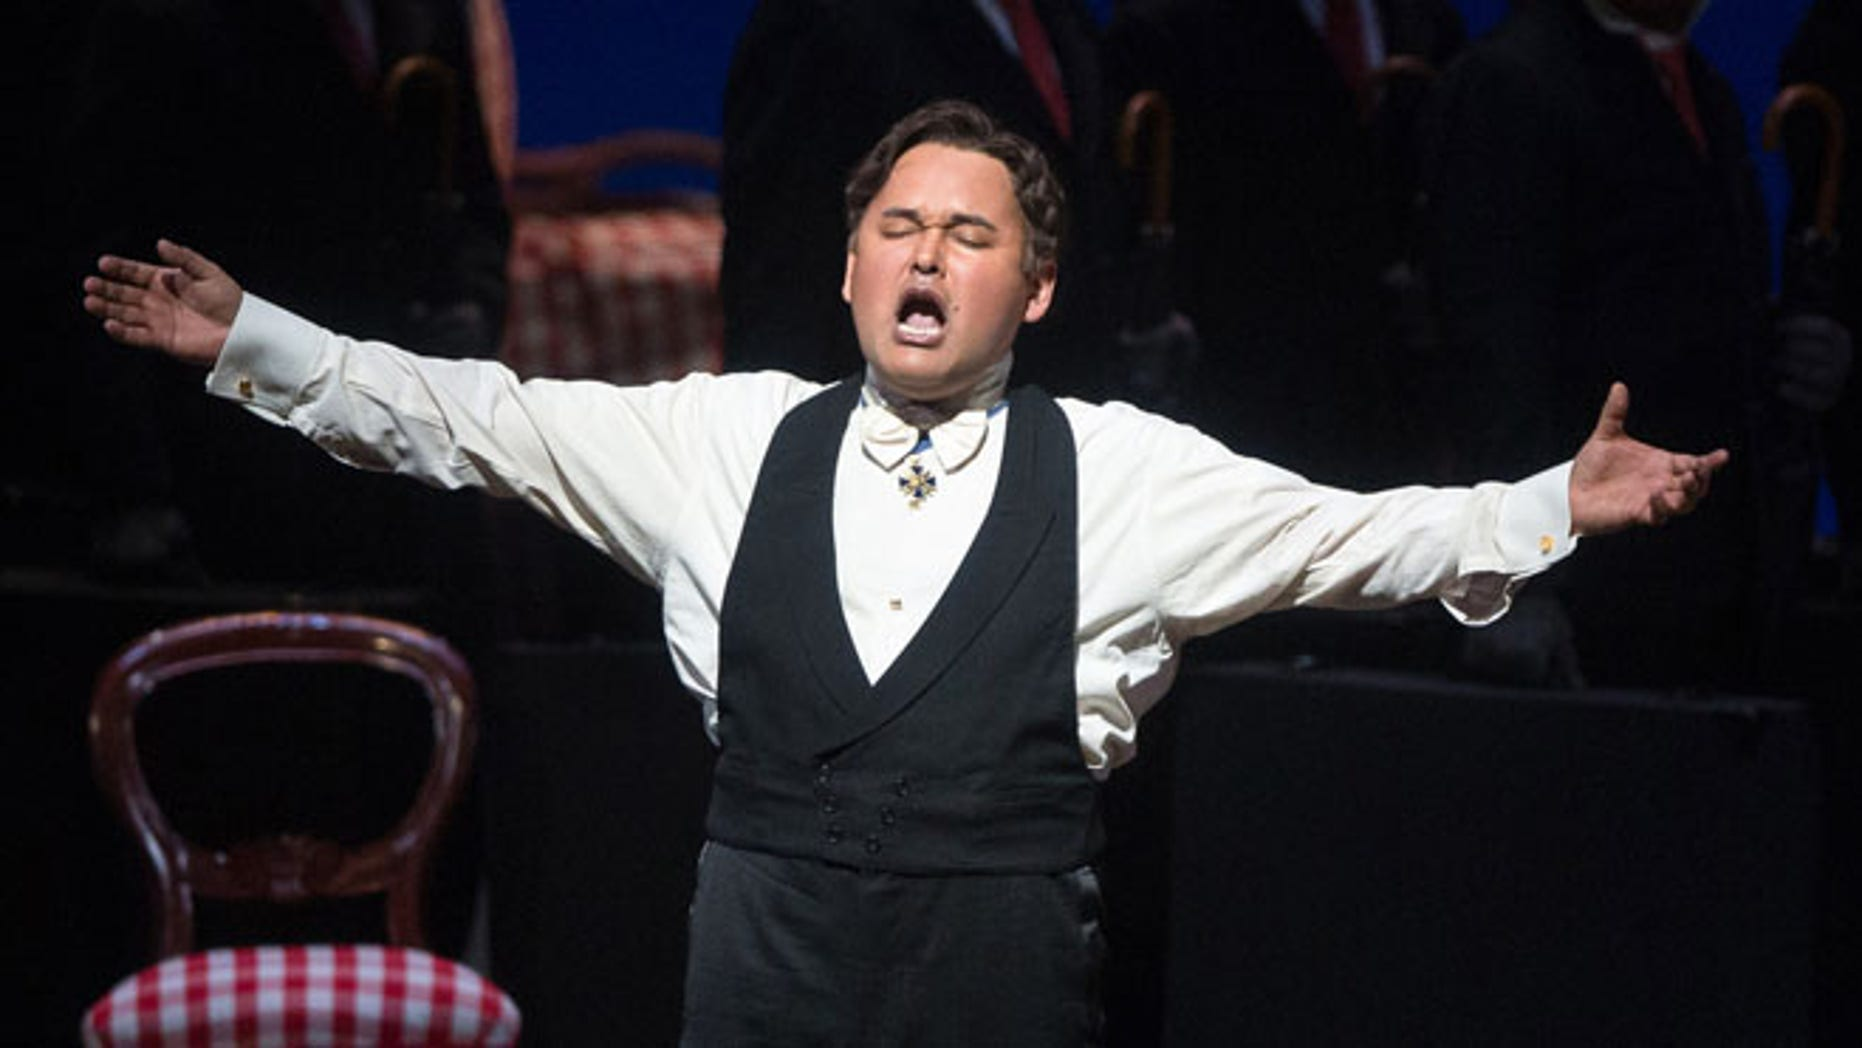 FILE - In this April 25, 2014 file photo provided by the Metropolitan Opera, Javier Camarena performs as Don Ramiro during a performance of âLa Cenerentolaâ at the Metropolitan Opera in New York. After giving a rare encore at New Yorkâs Metropolitan Opera earlier this year, Camarena is marking the 10th anniversary of his international career this week by giving his first professional performance in the city of his birth. The benefit concert for cancer patients will be held Friday, July 4 in Camarenaâs native Xalapa, capital of the Gulf state of Veracruz. (AP Photo/Metropolitan Opera, Marty Sohl, File)